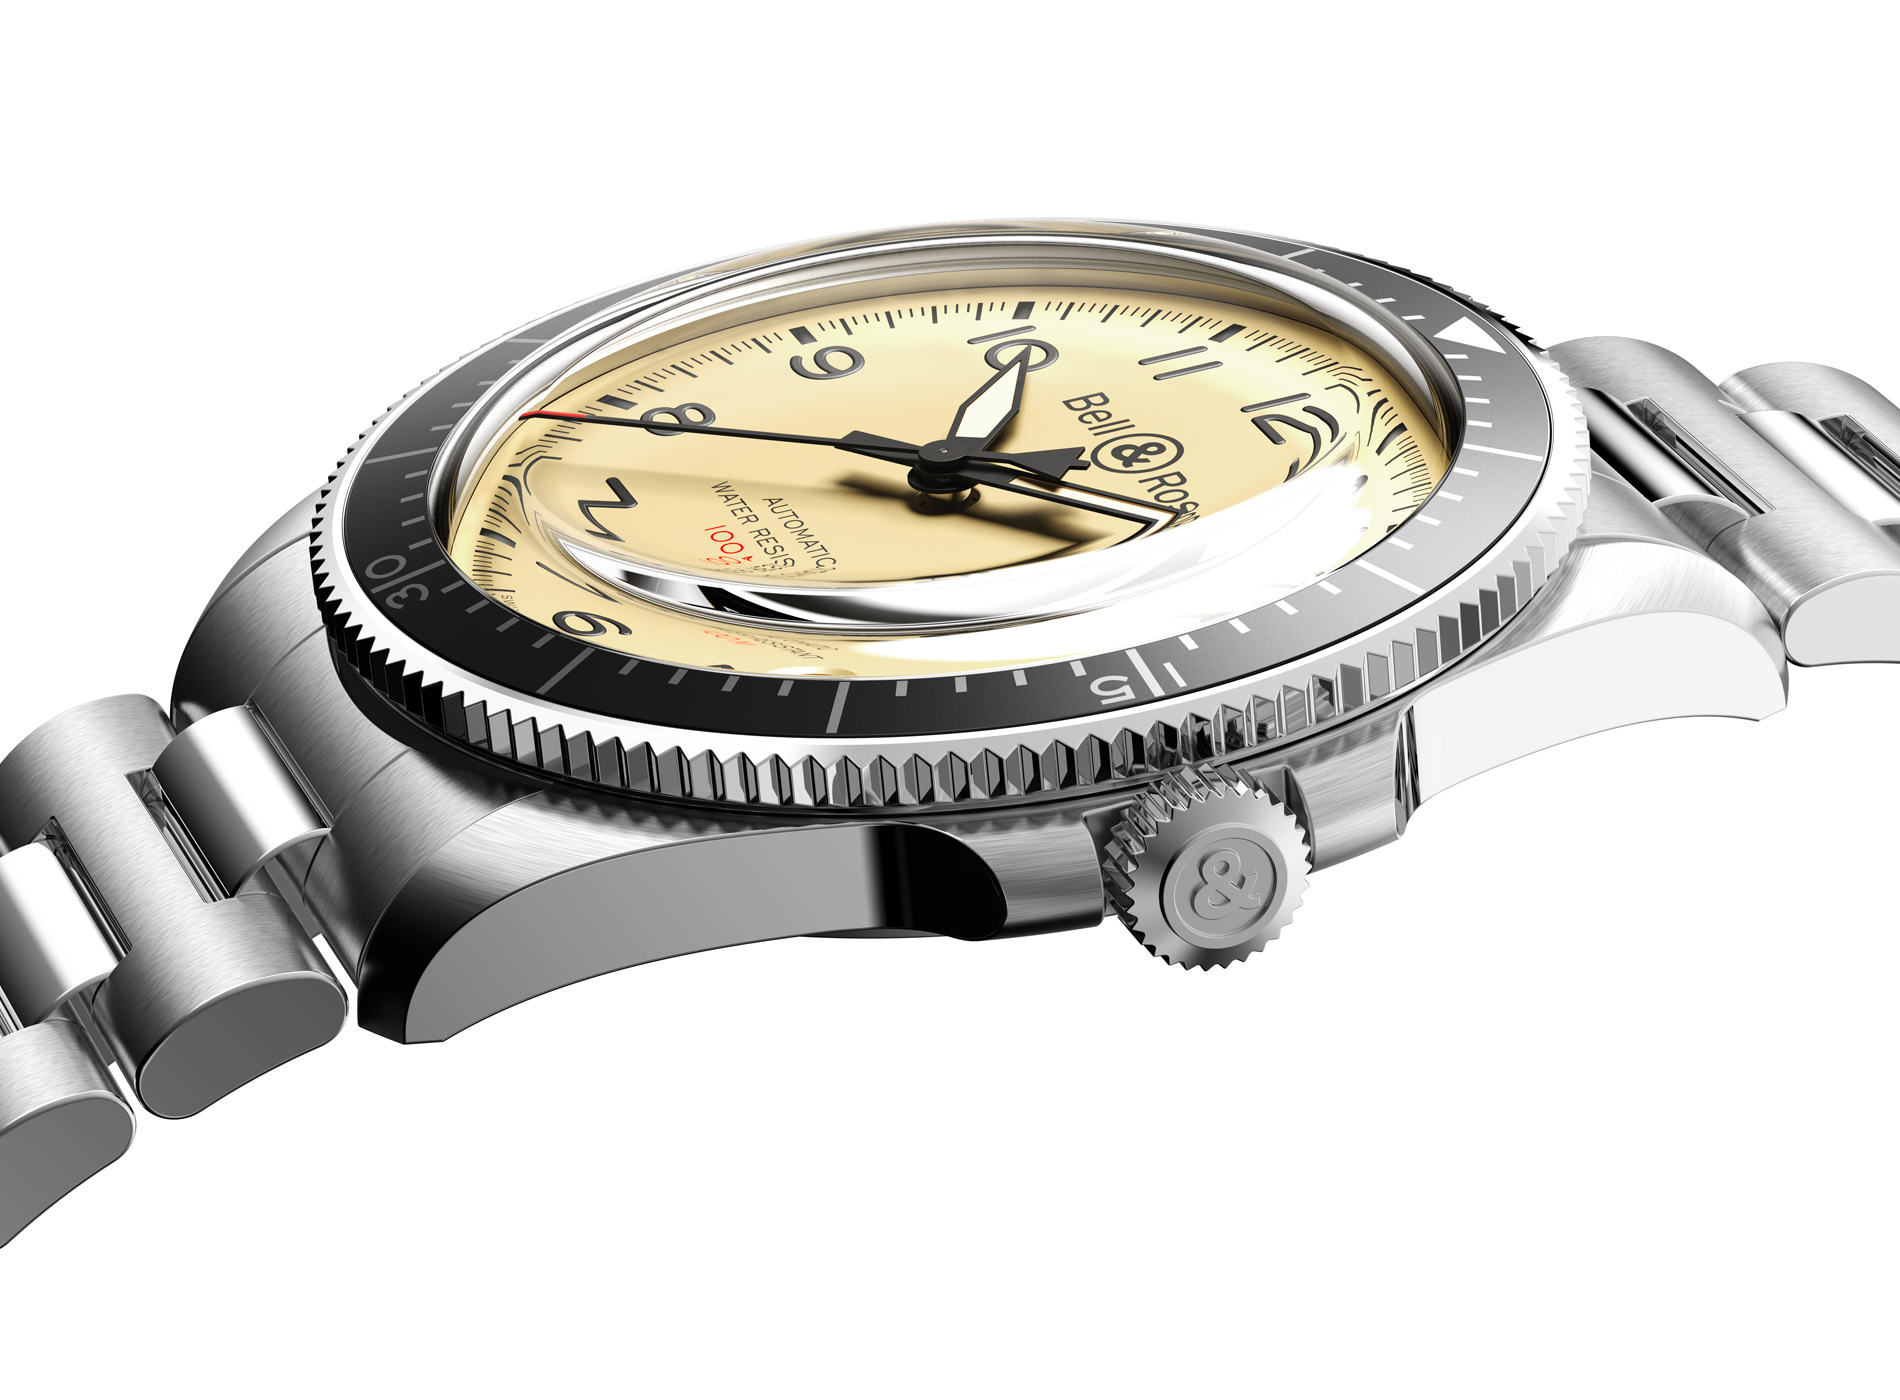 Montre Bell & Ross Collection BR V2 92 Military Beige